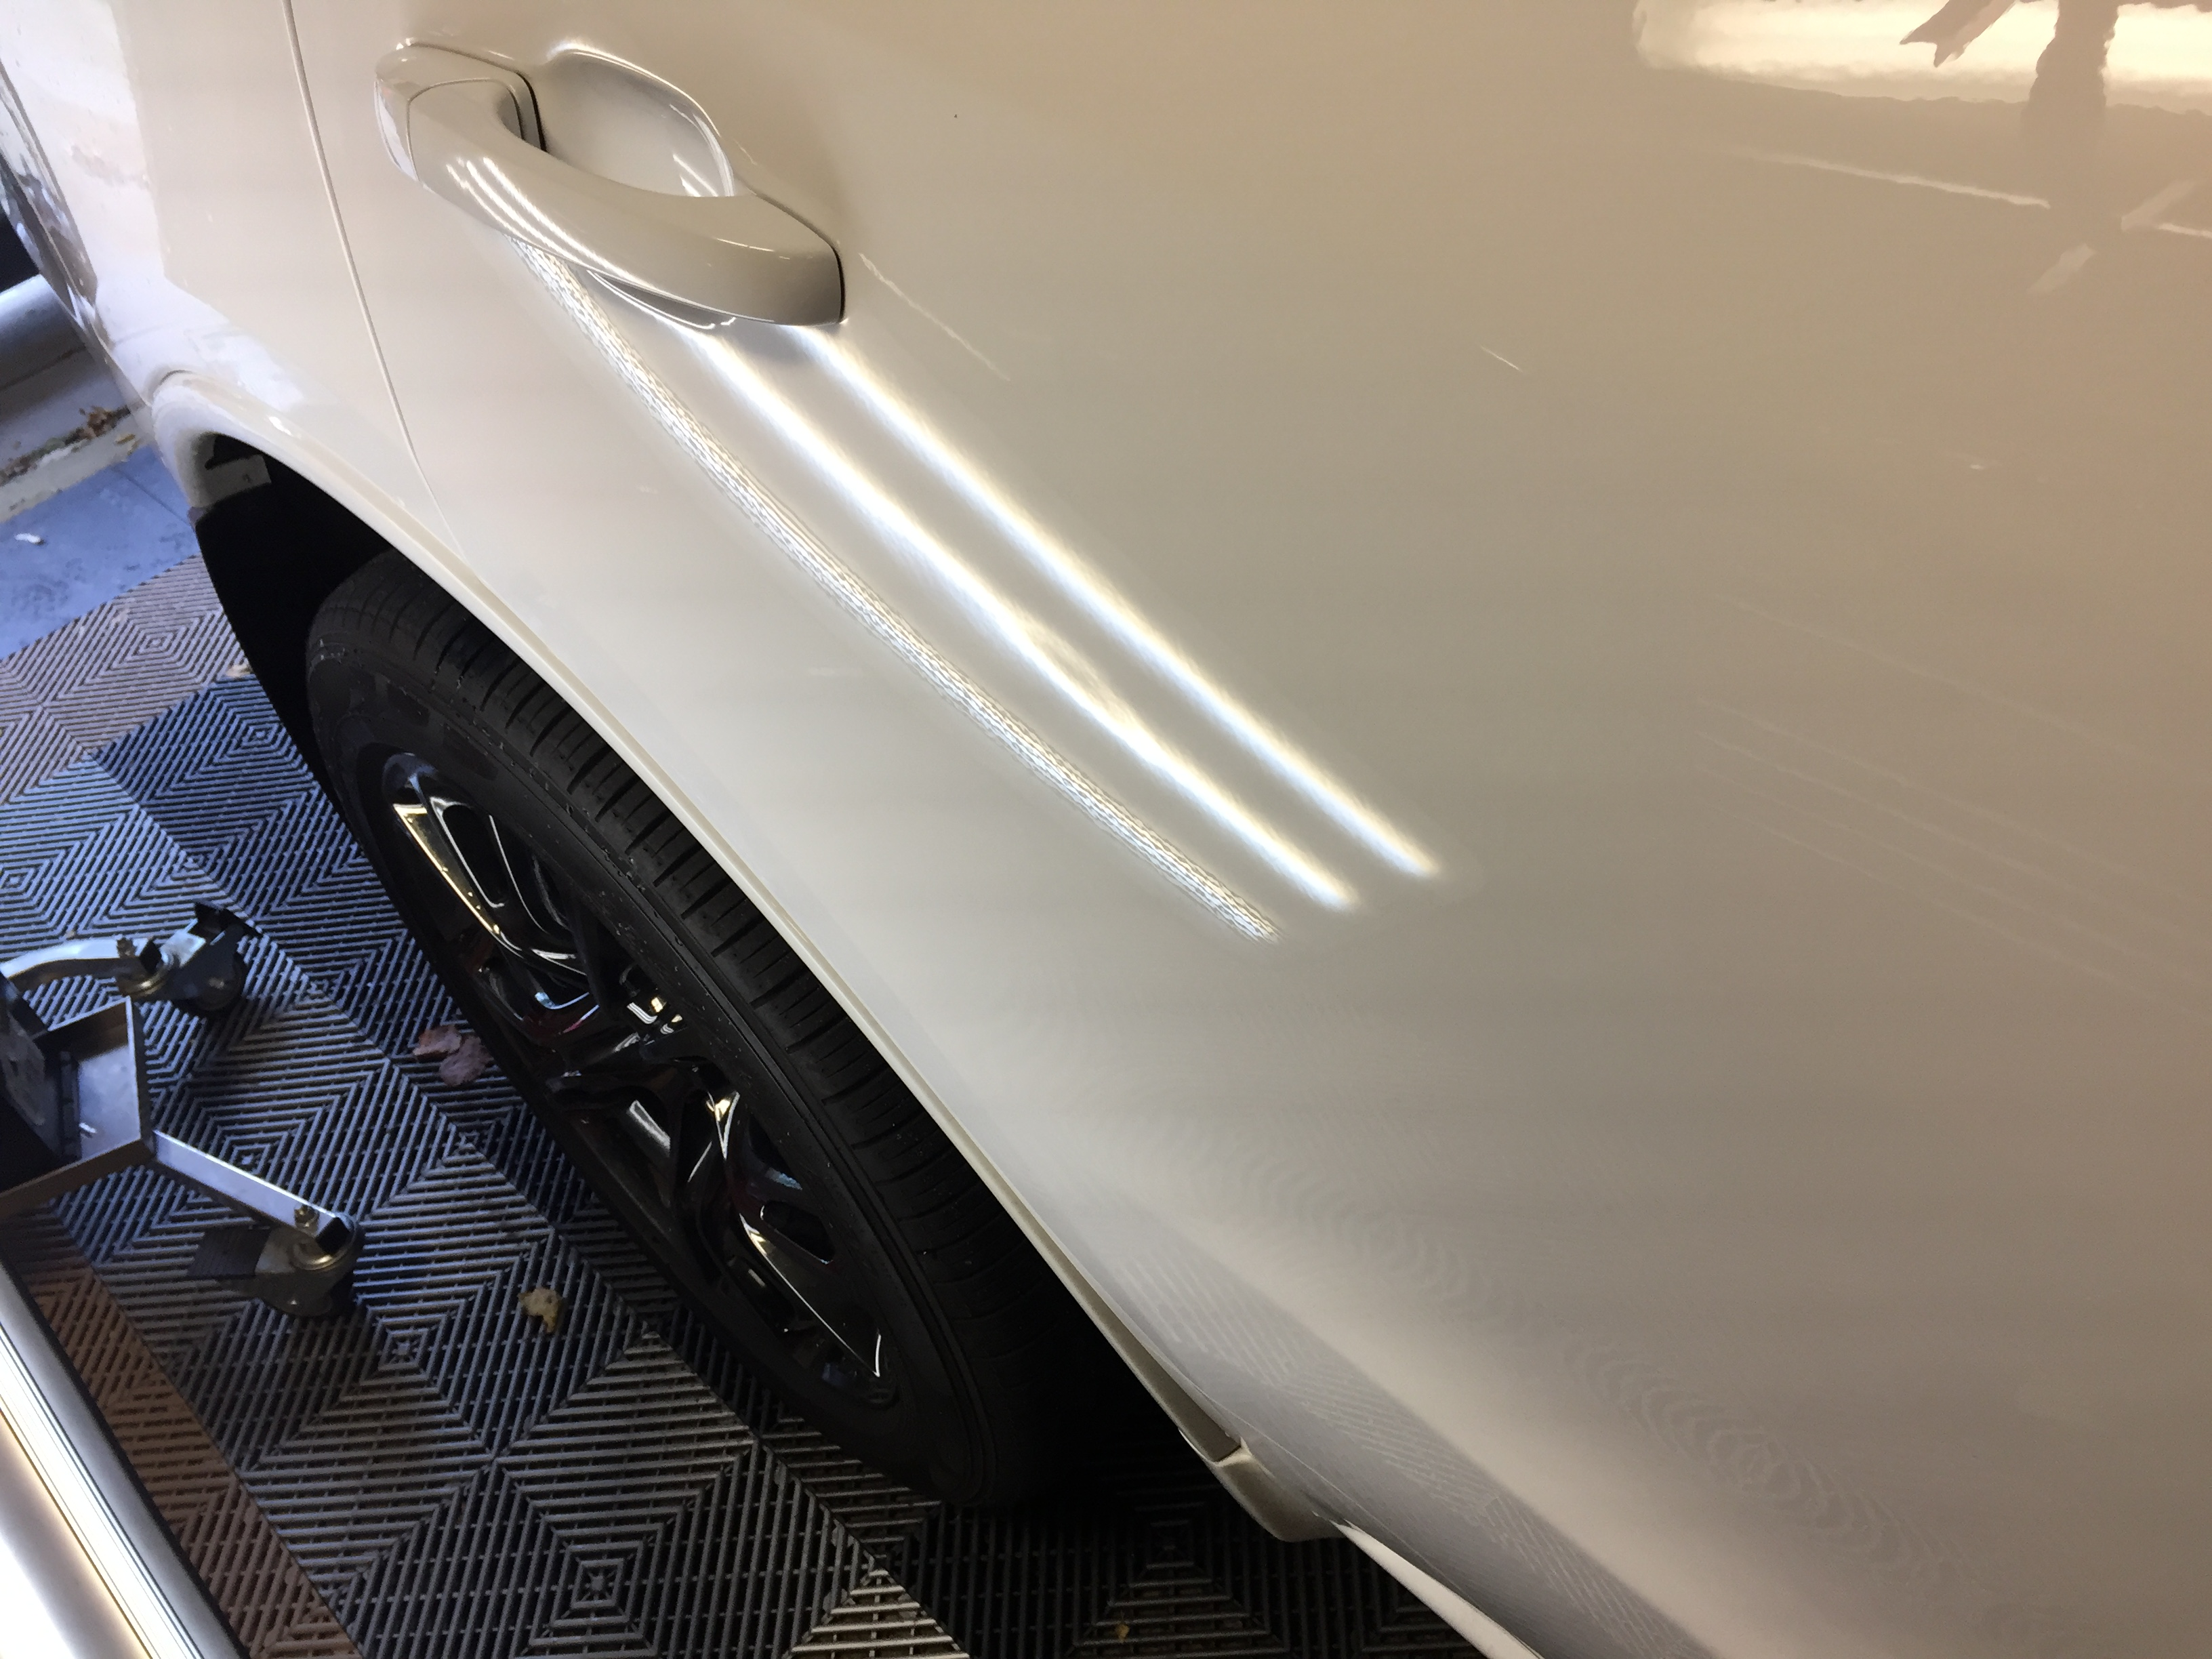 2015 Dodge Durango RT Paintless Dent Removal, Springfield IL http://217dent.com Before Image of door damage